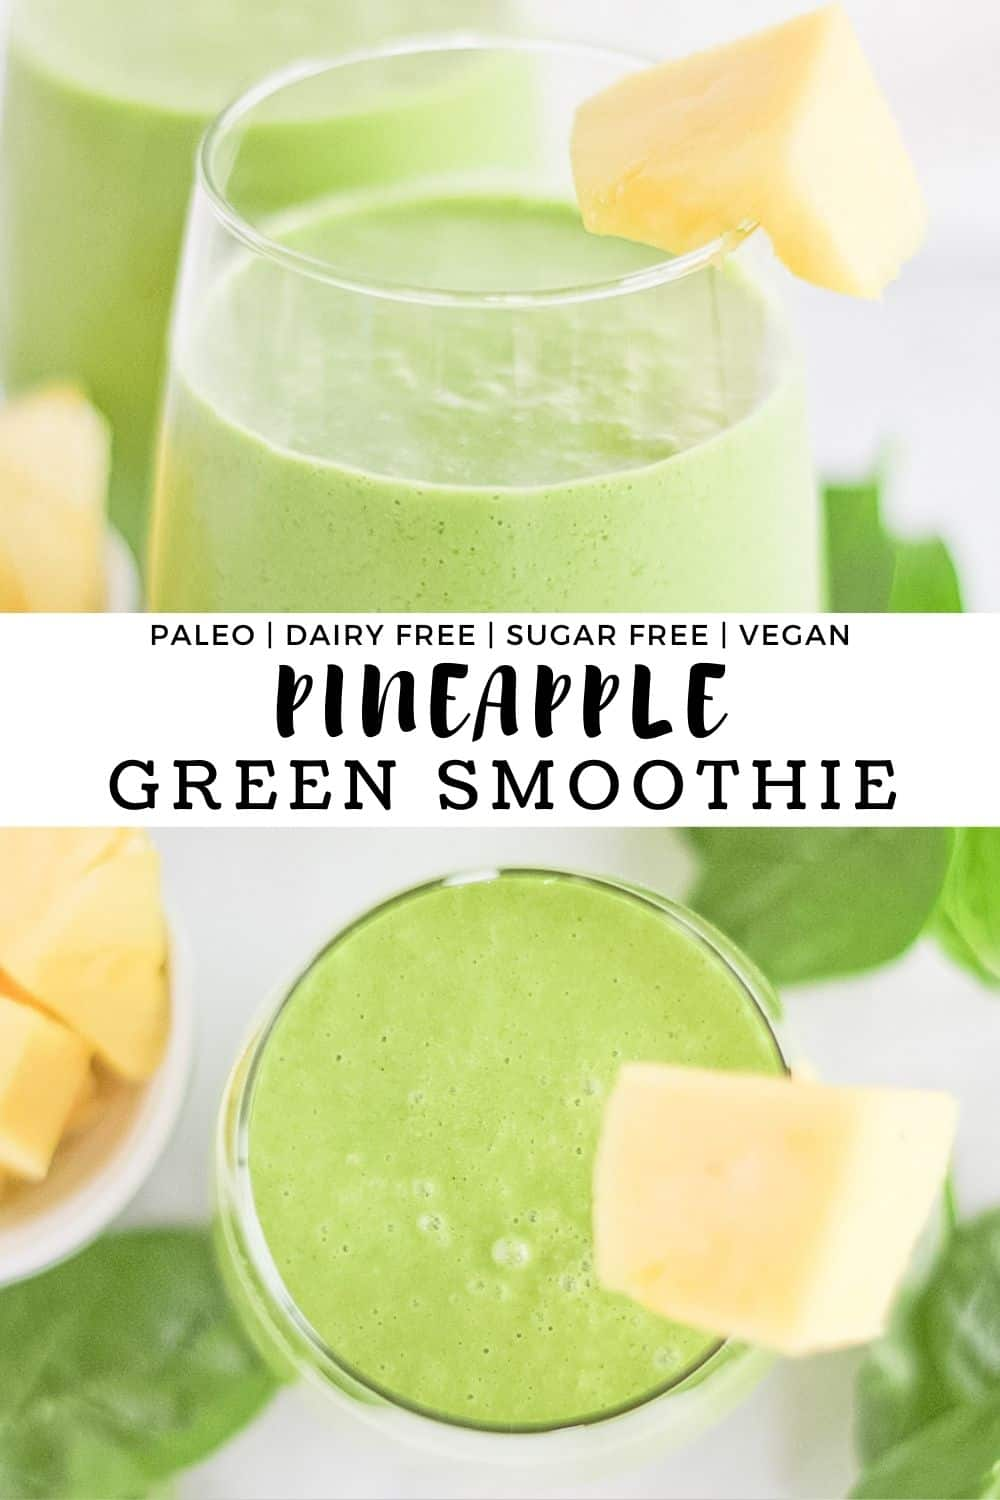 Pineapple green smoothies in glass cups with a wedge of pineapple on the side of the glass.